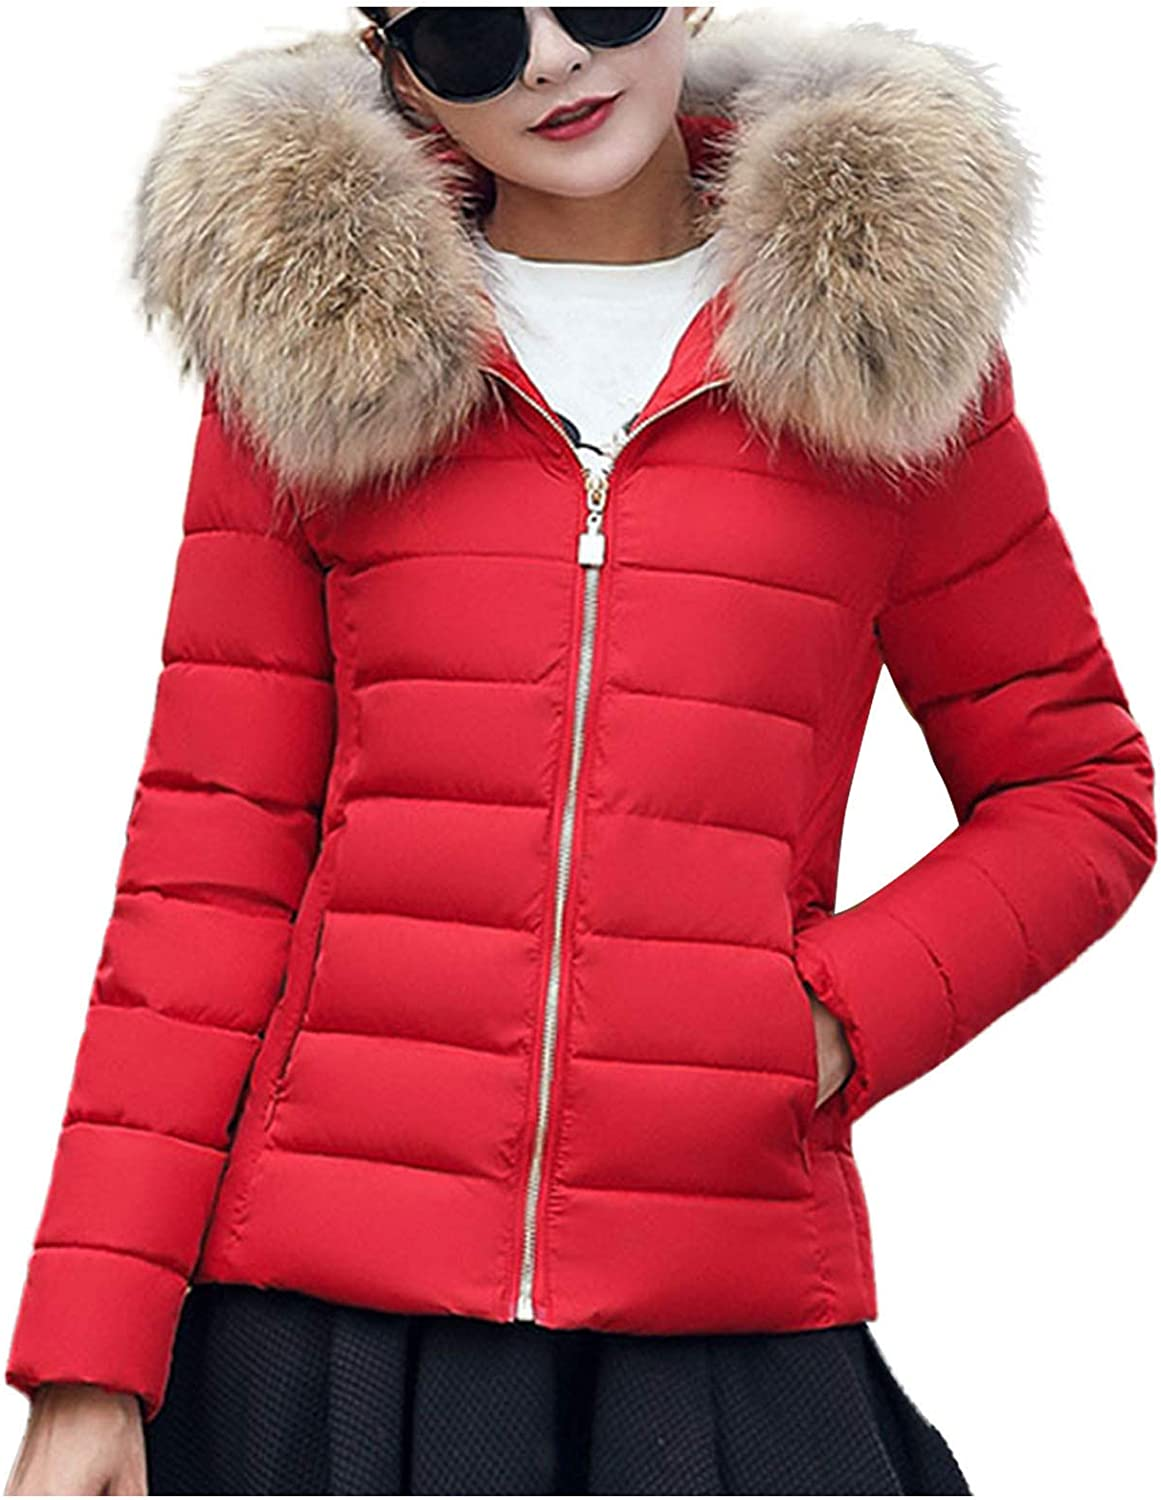 KEEADI Women's Hooded Puffer Coat Short Quilted Jacket Full Zip Warm Winter Thickened Coat